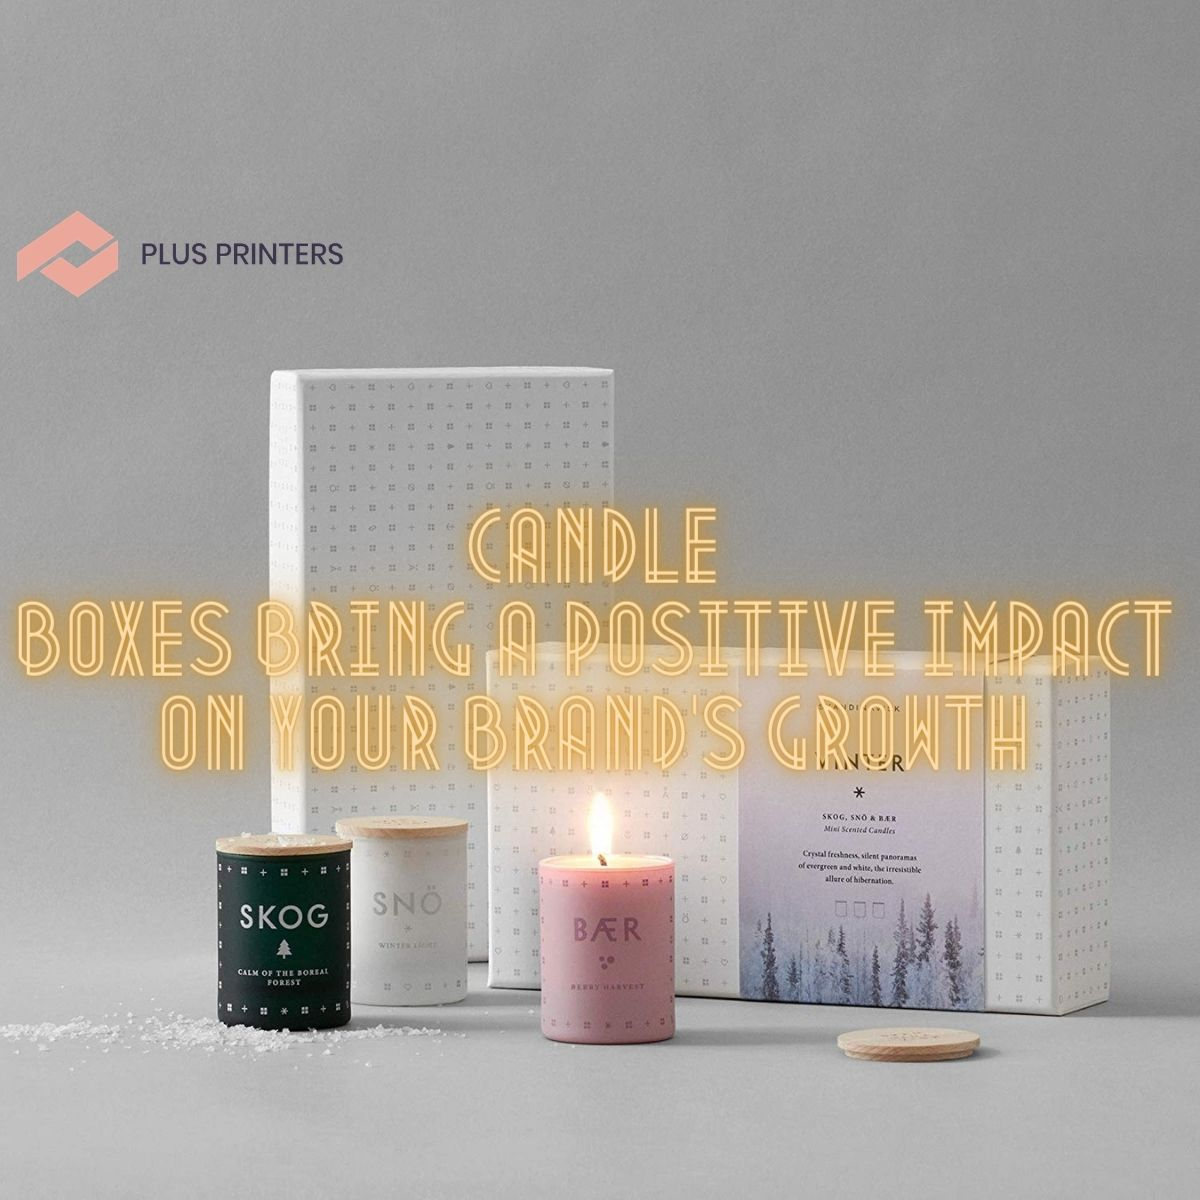 Candle Boxes Bring a Positive Impact on Your Brand's Growth